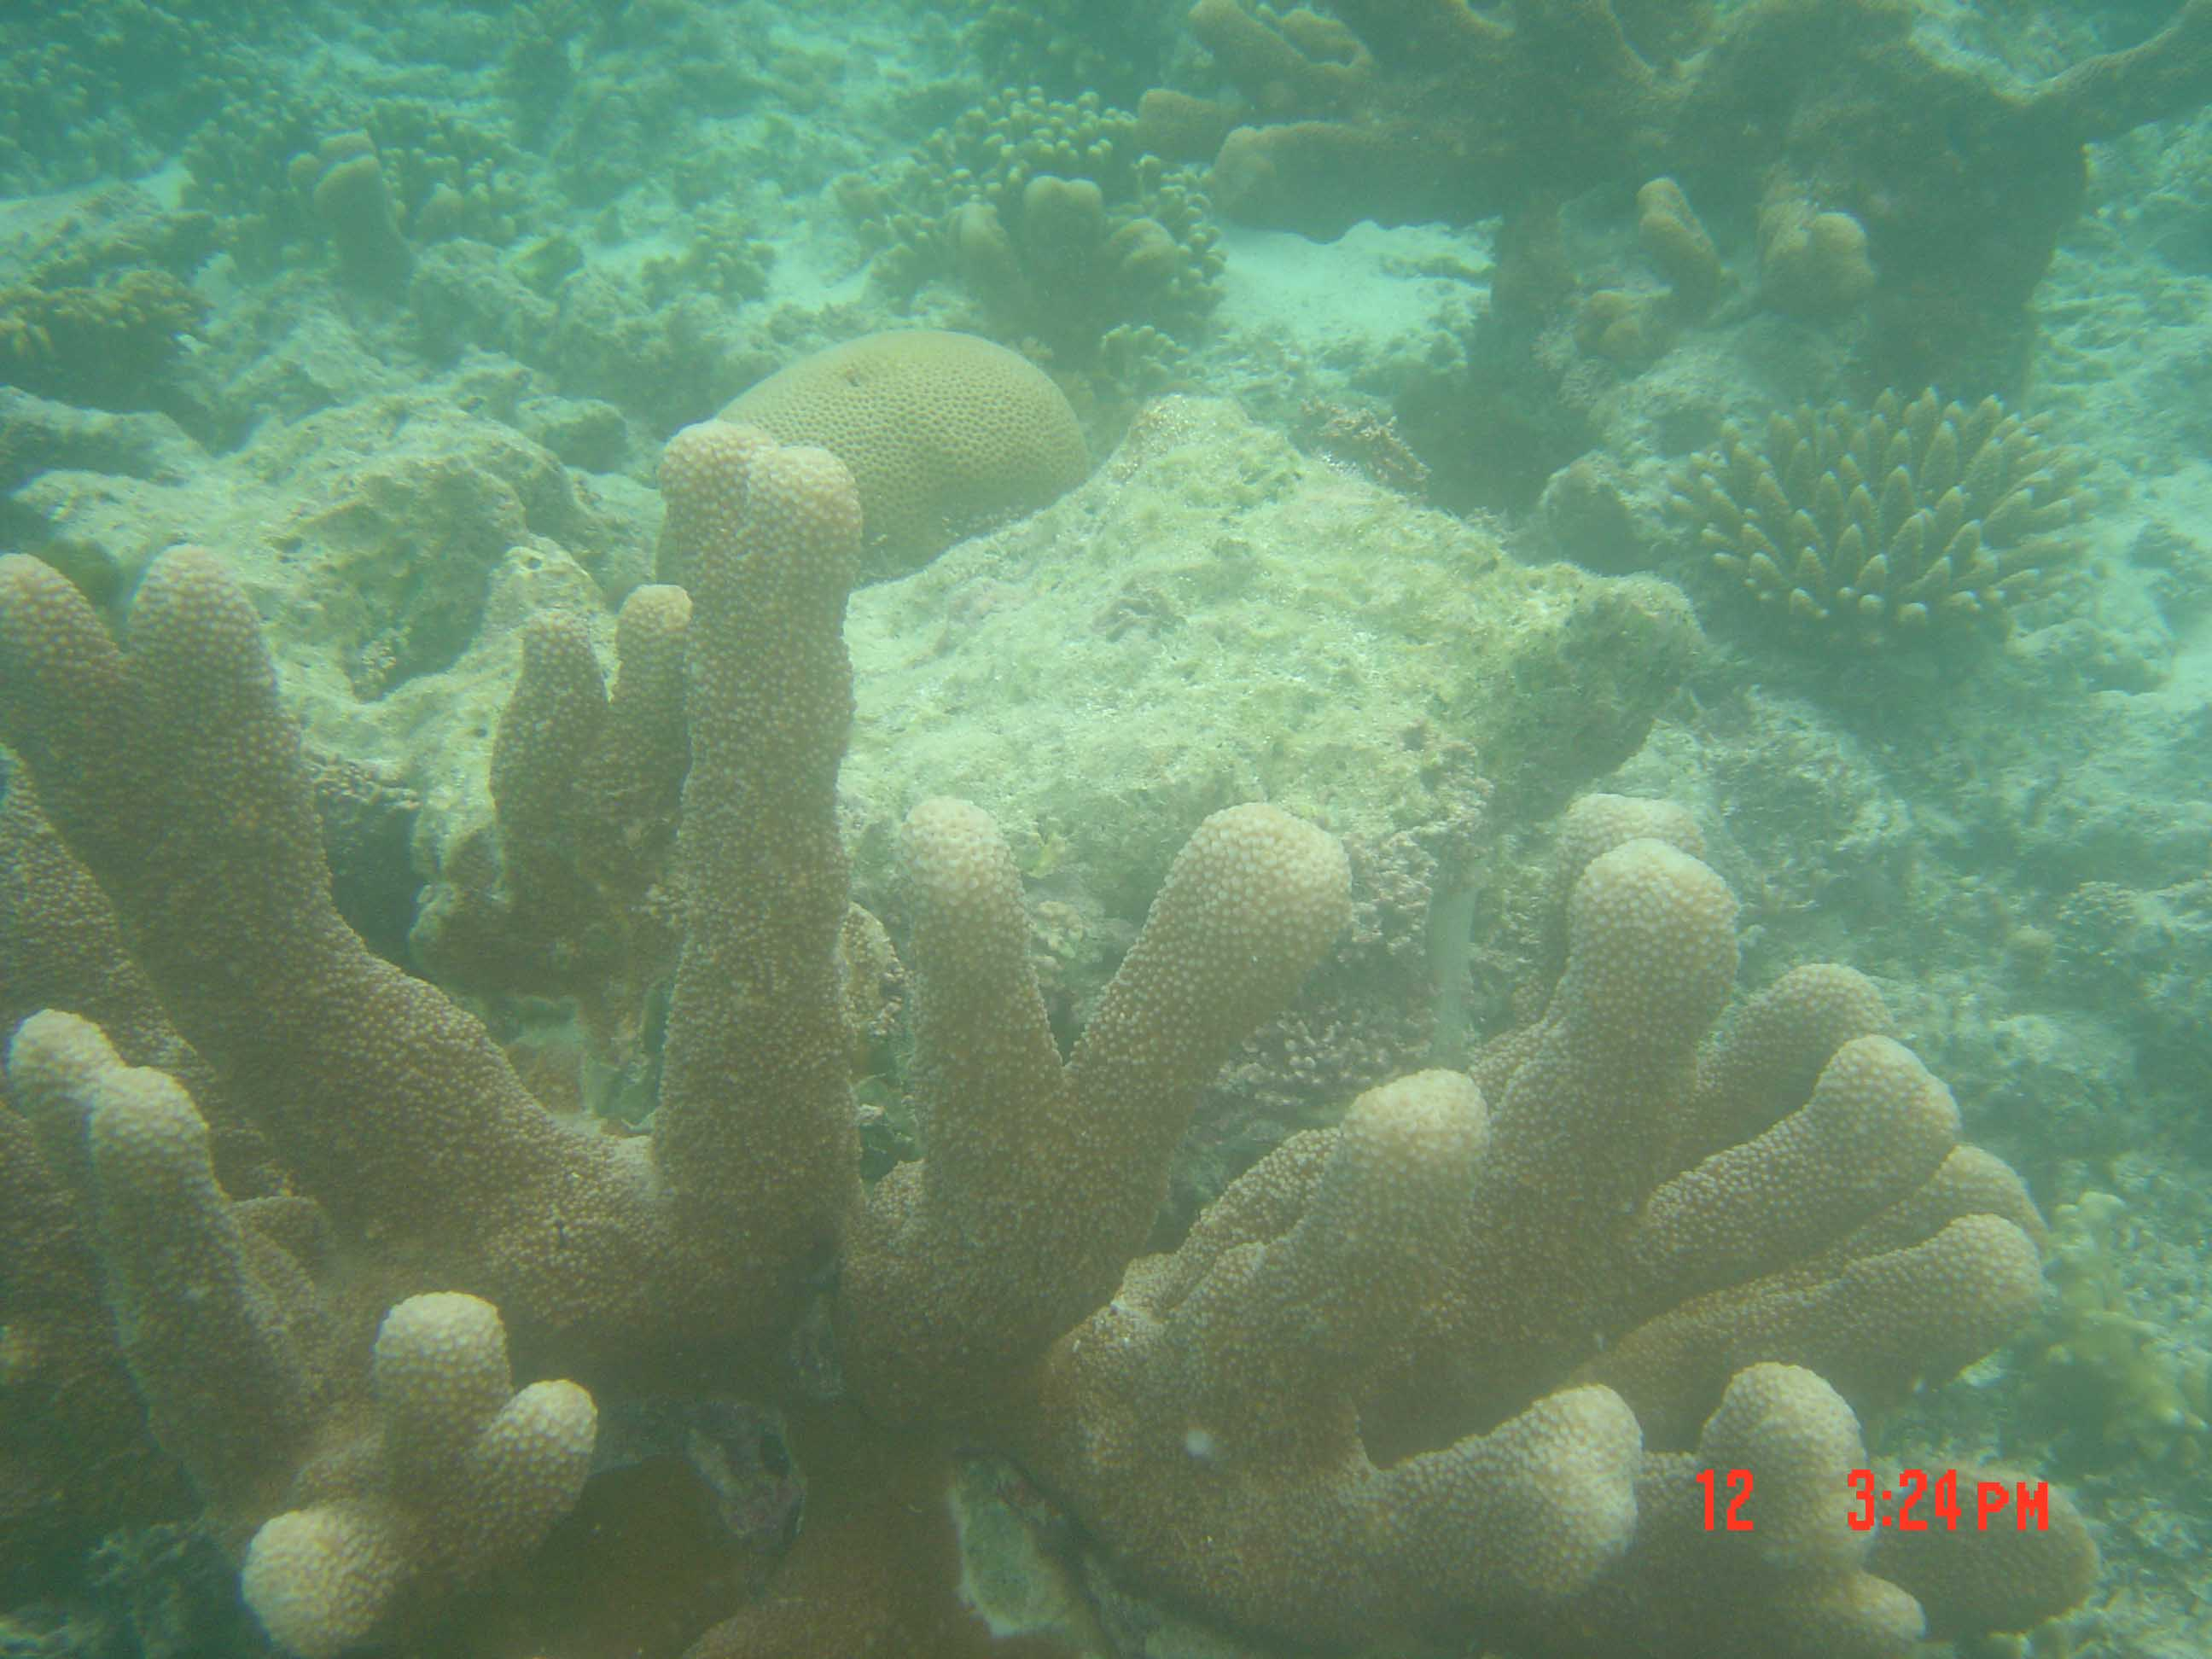 Profusion of corals - Acropora spp. and Favia spp.